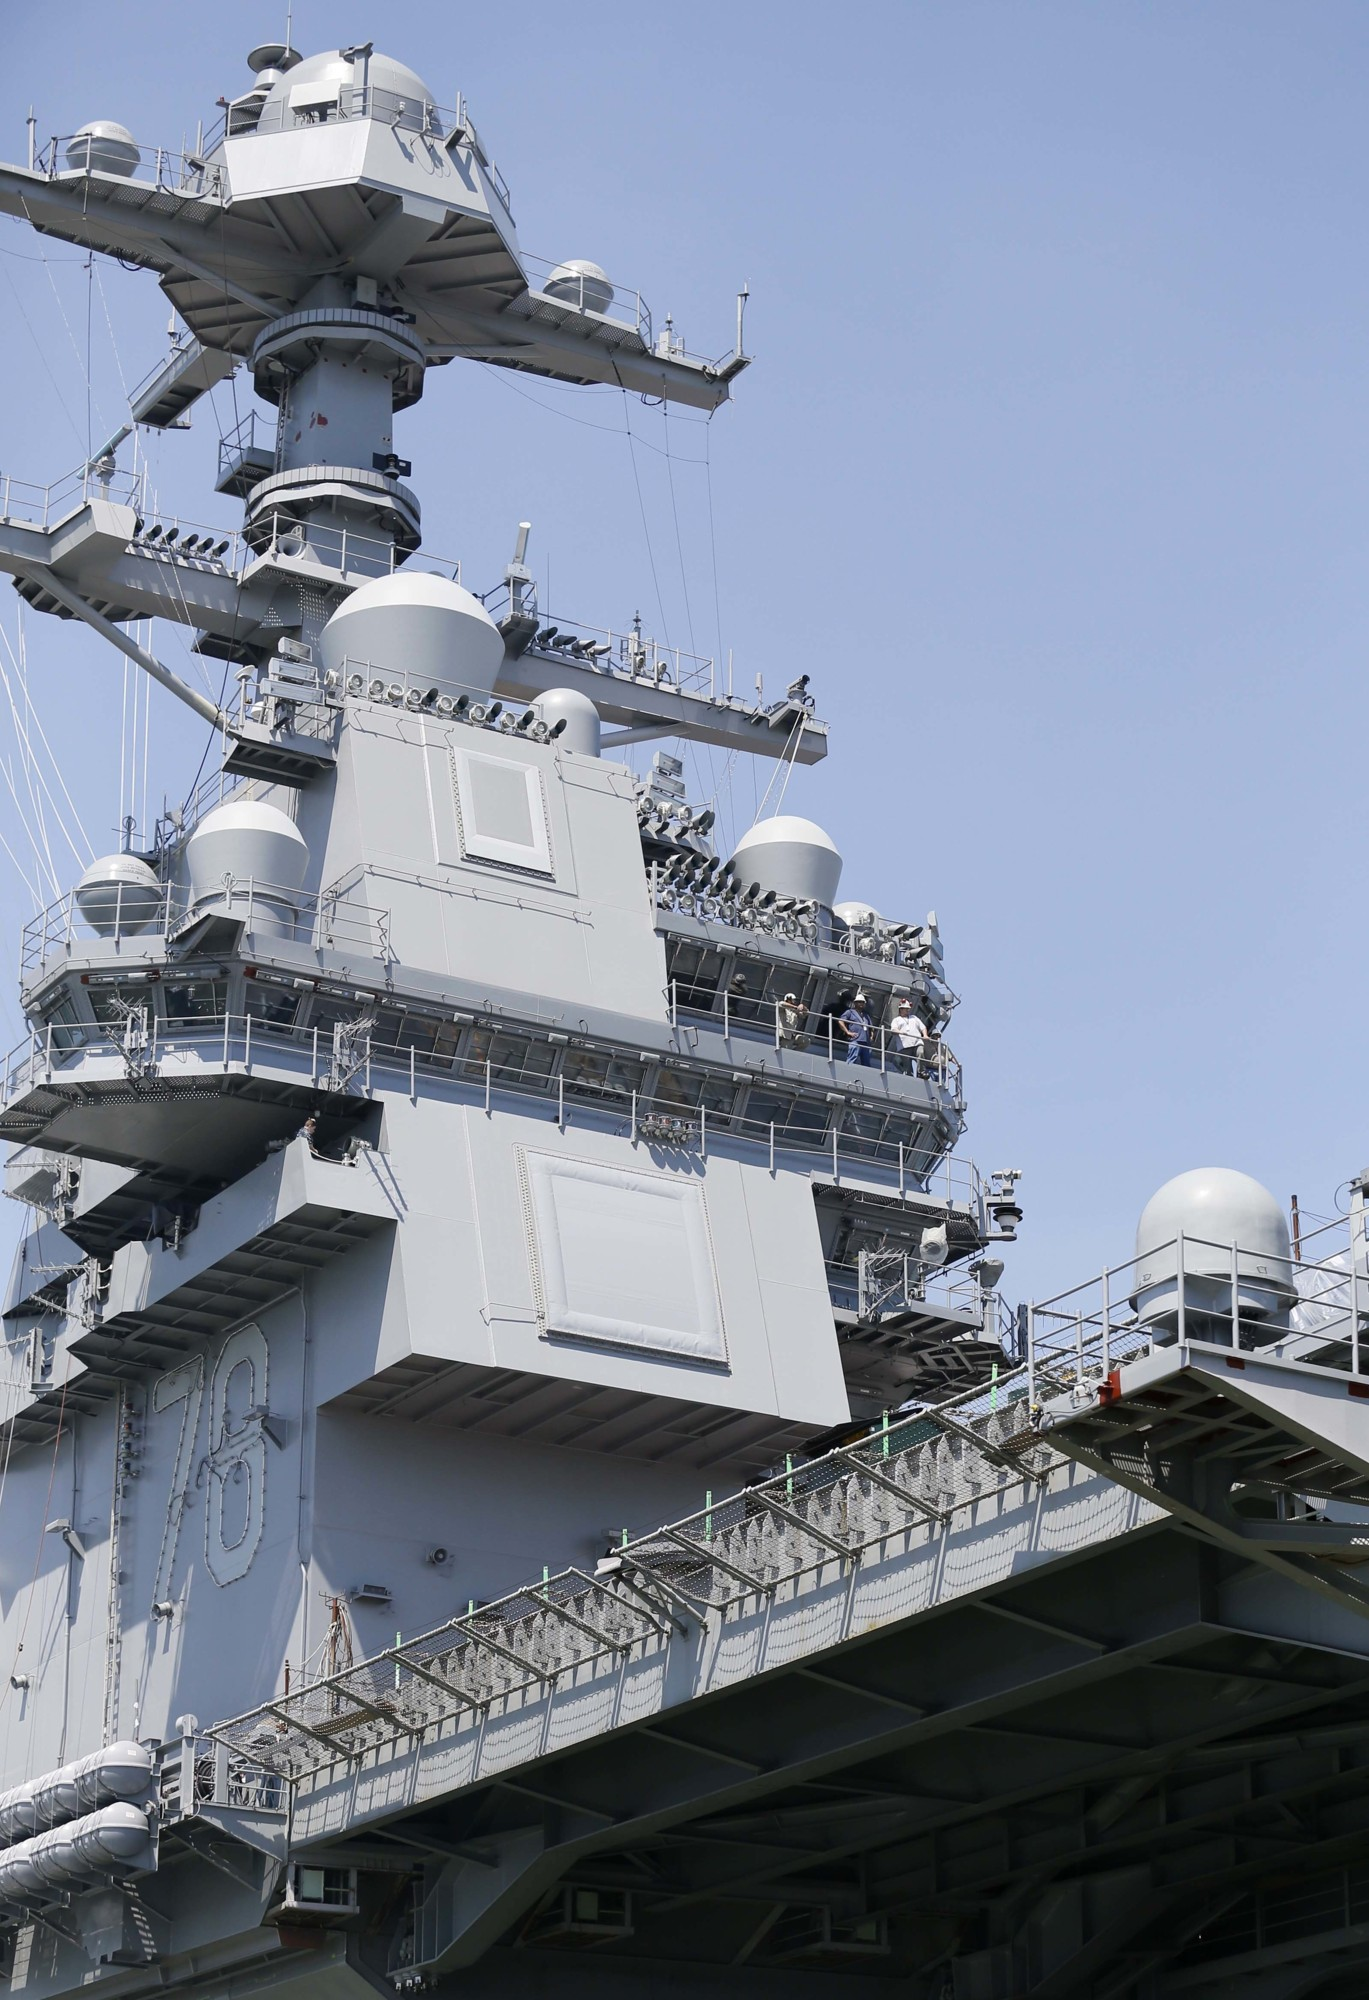 cvn 78 uss gerald r ford aircraft carrier us navy newport news. Cars Review. Best American Auto & Cars Review